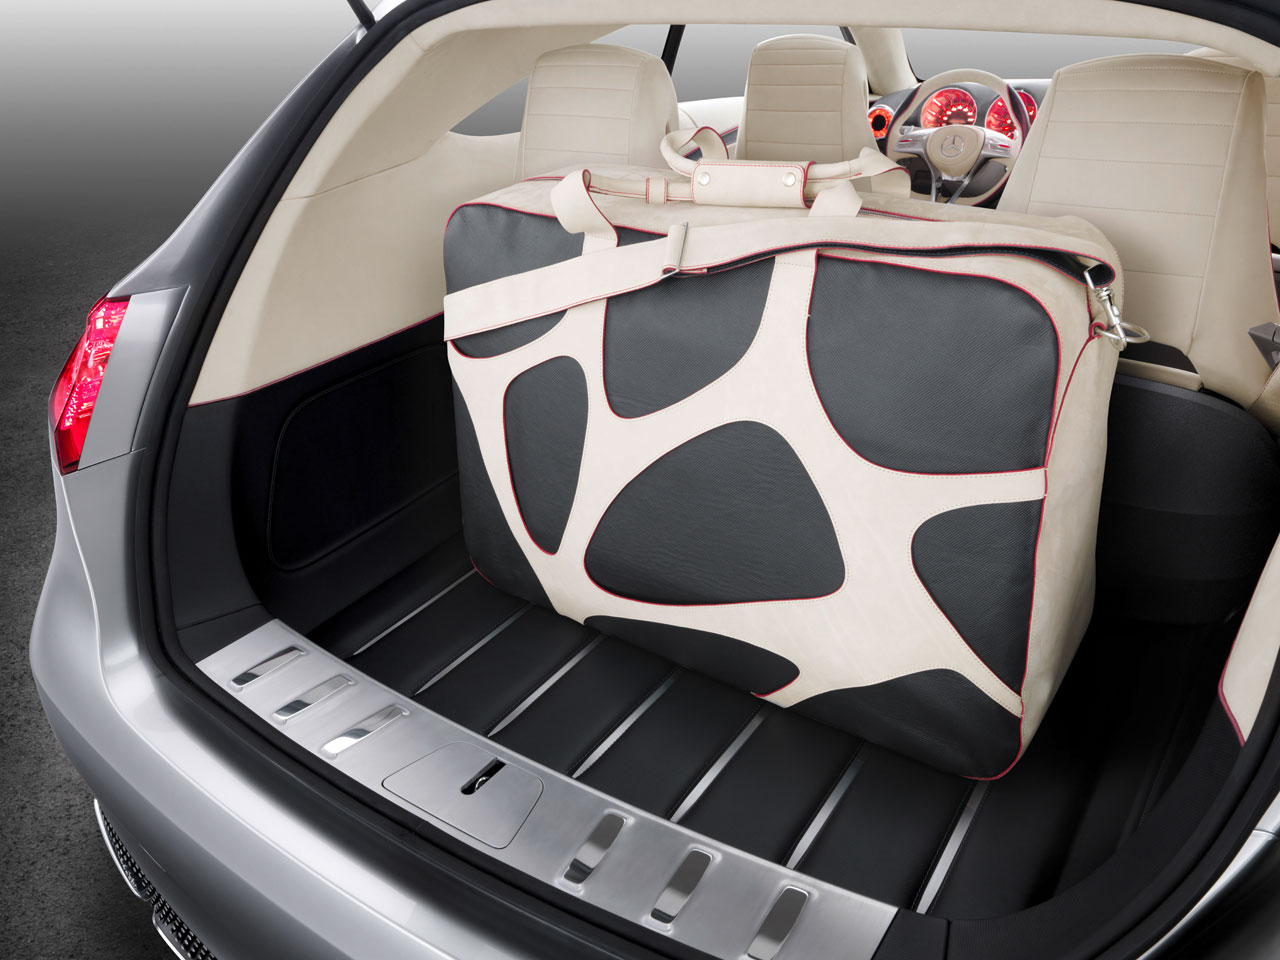 19_Mercedes-Benz-Concept-A-Class-Luggage-Compartment